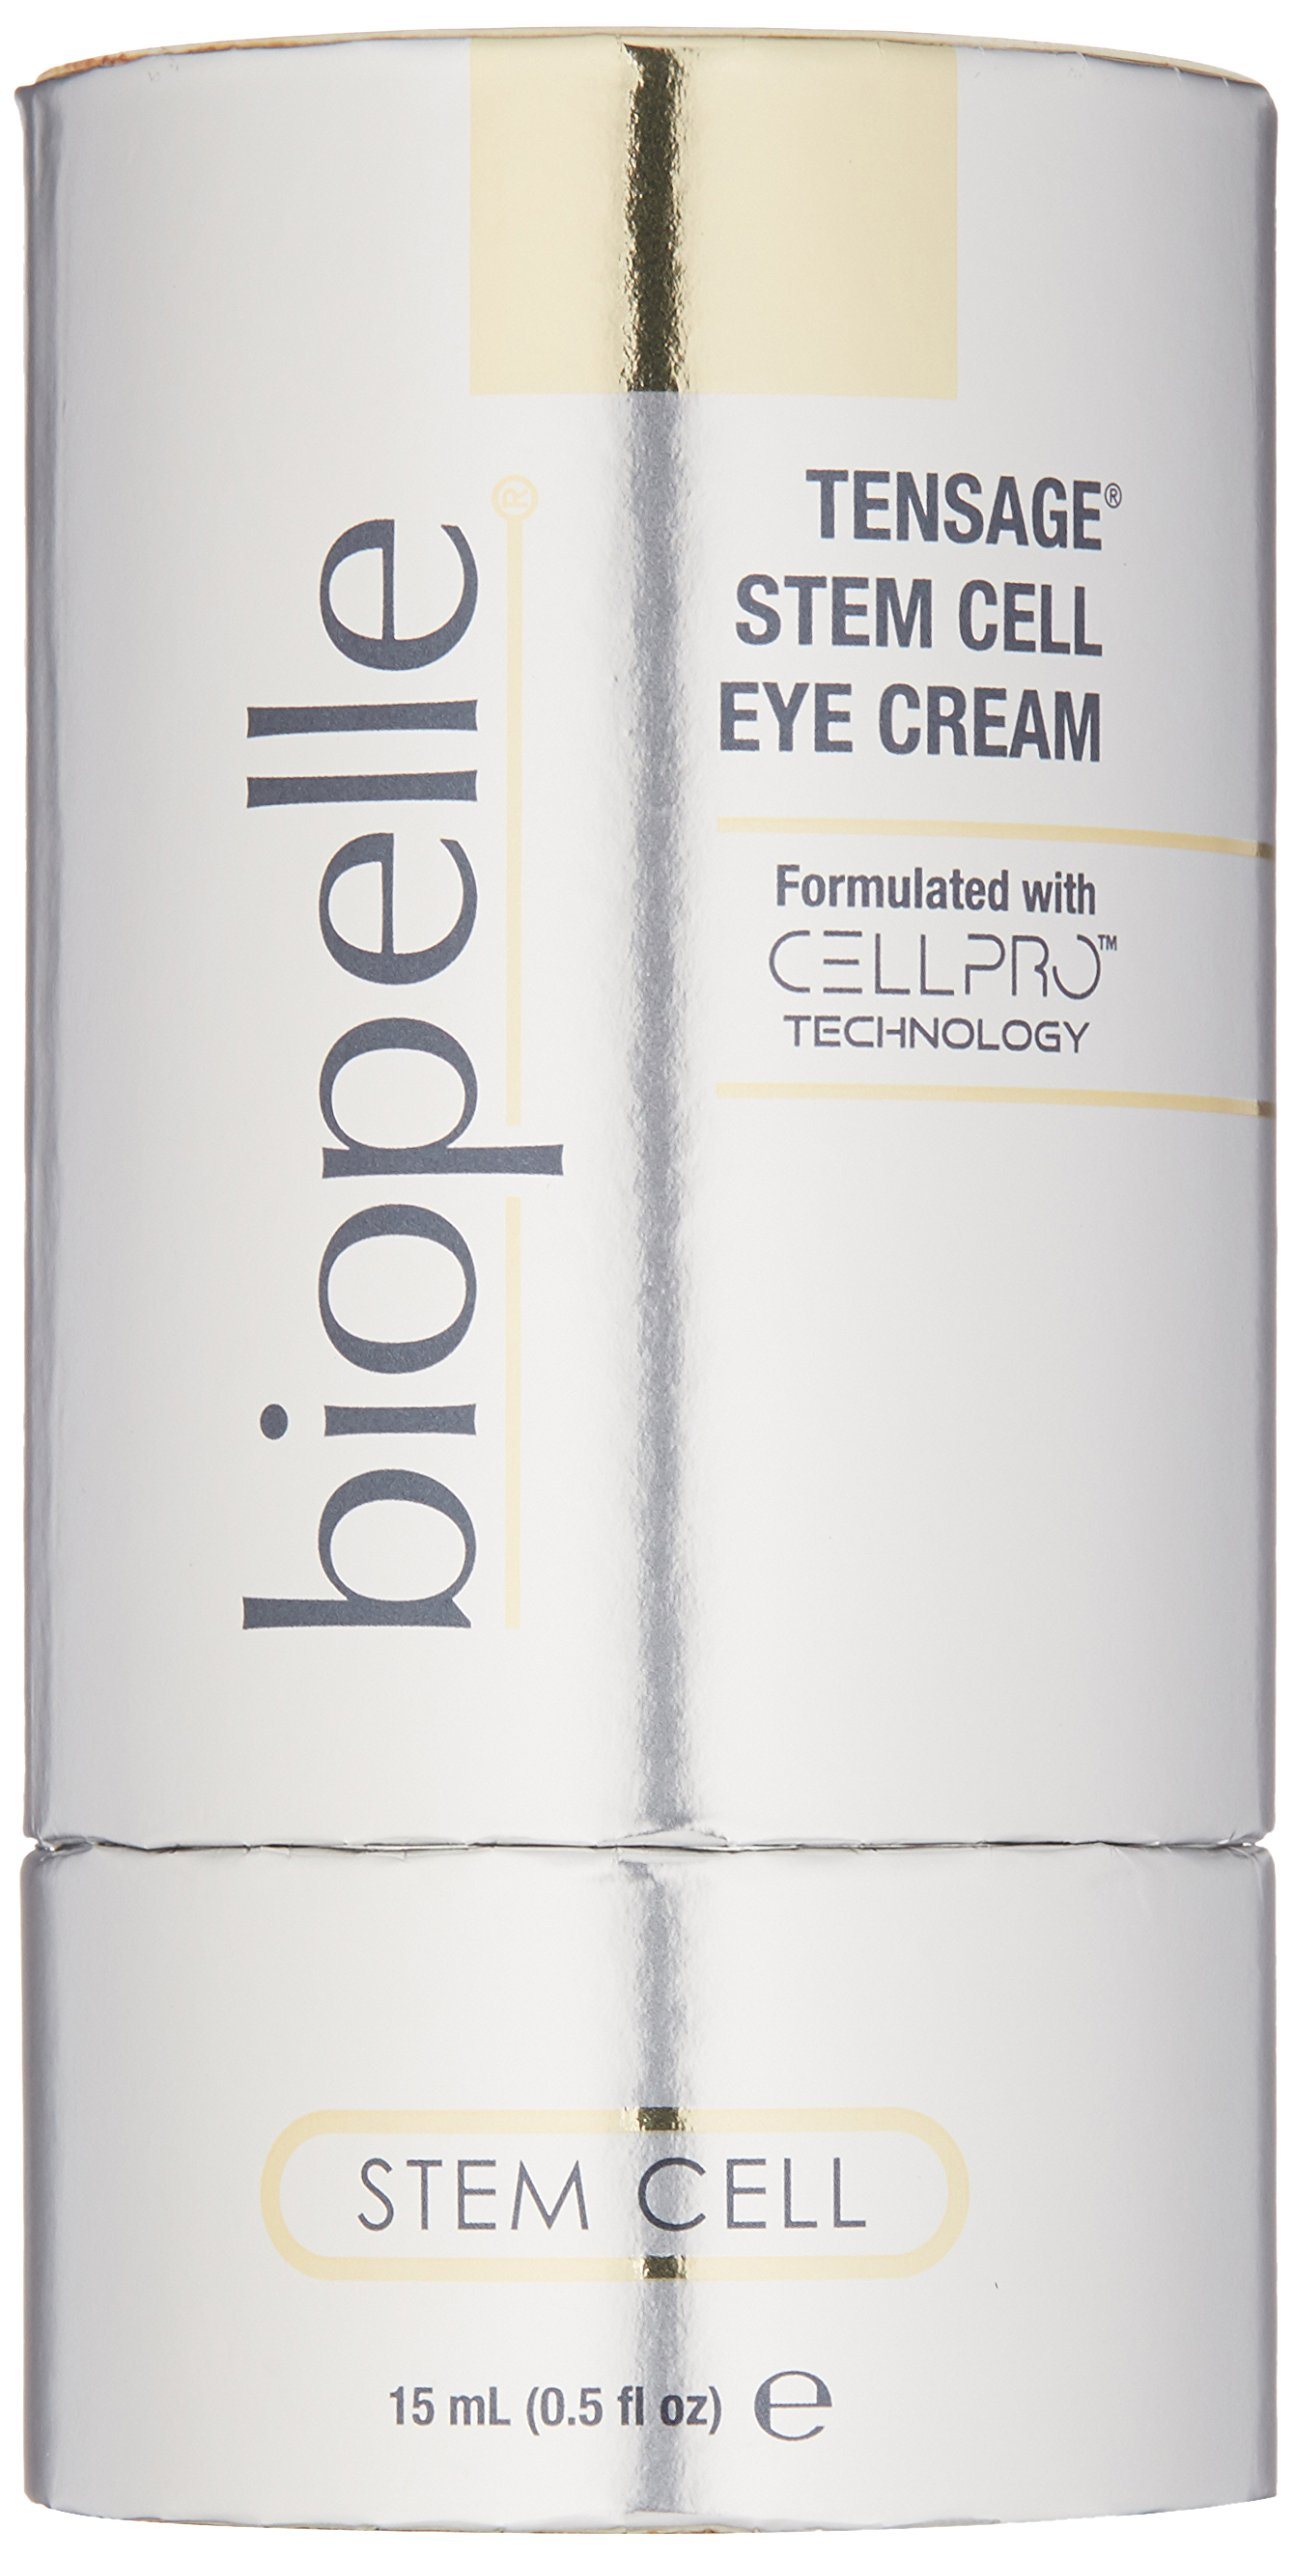 Biopelle Tensage Stem Cell Anti Wrinkle Cream for Eyes by biopelle (Image #4)